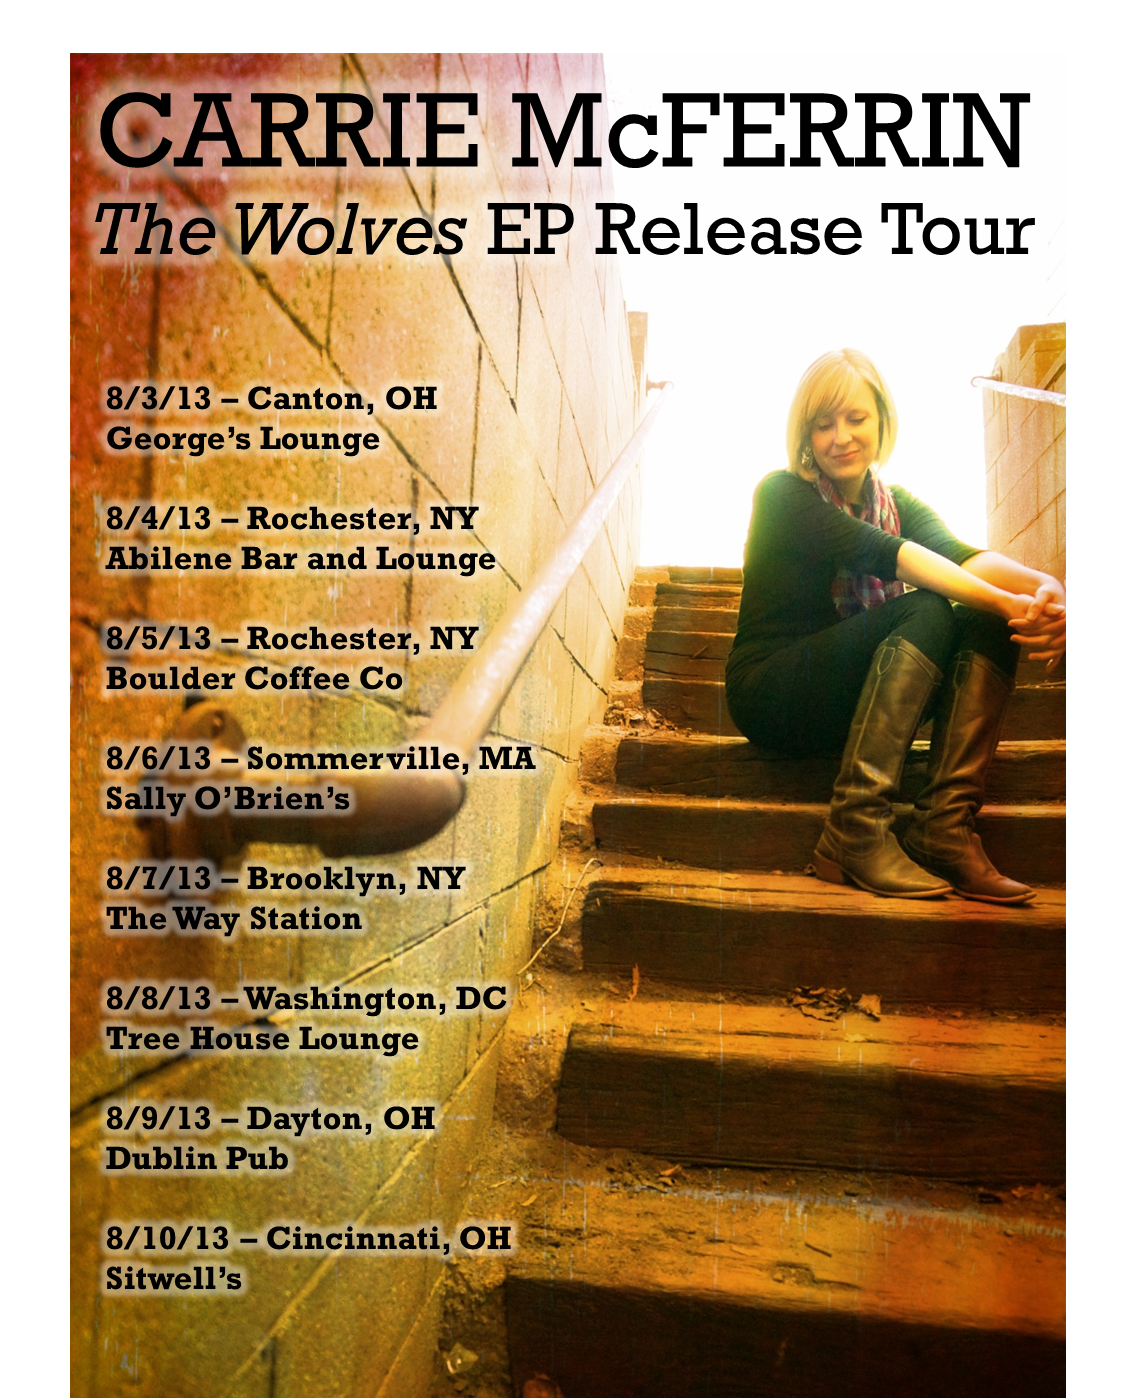 The Wolves EP Release Tour (8/3-8/10)